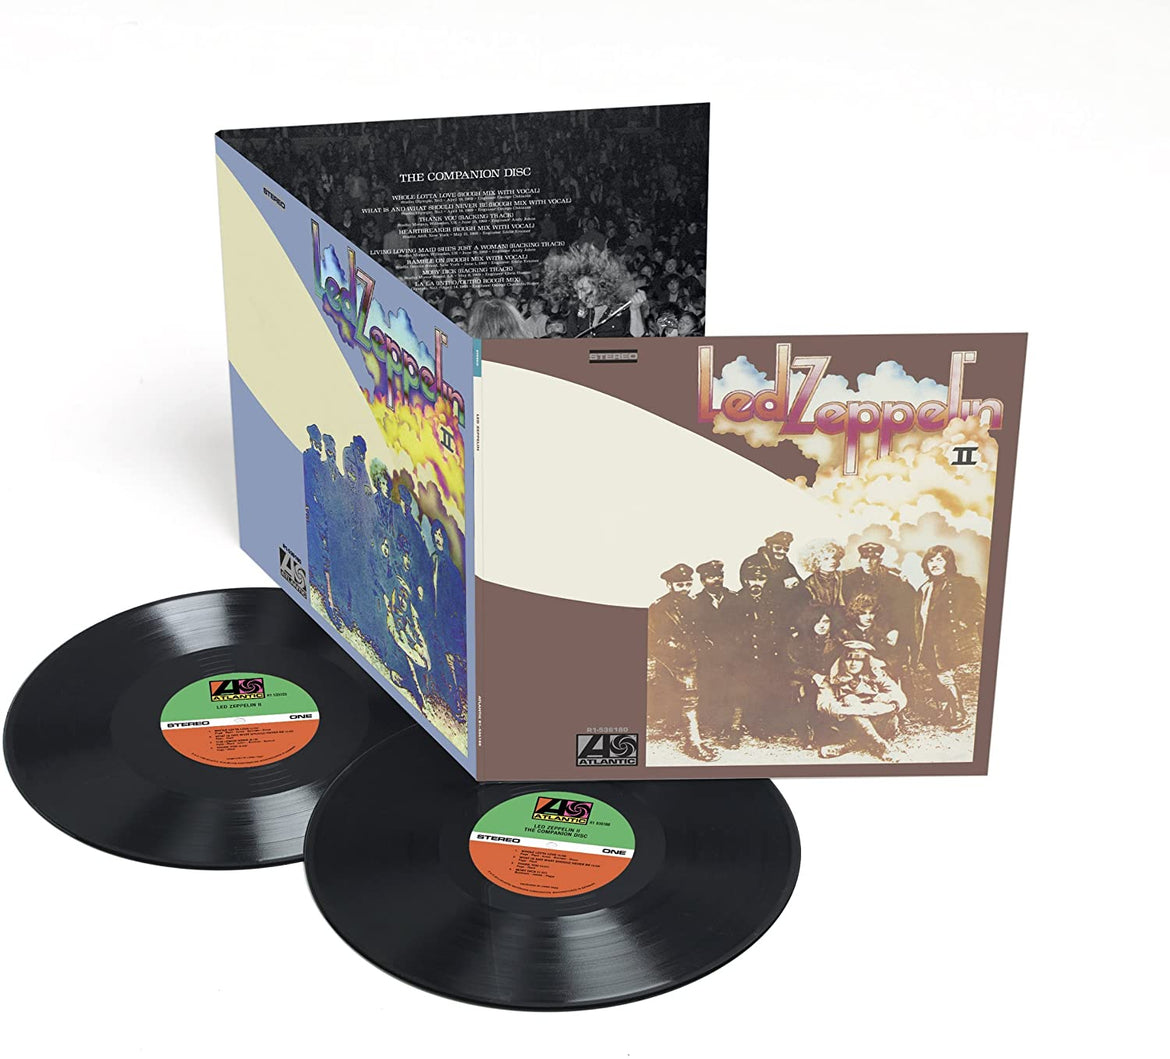 LED ZEPPELIN -DELUXE EDITIONS - ALL OF THE LEGENDARY ALBUMS REMASTERED BY JIMMY PAGE  WITH PREVIOUSLY UNRELEASED BONUS TRACKS